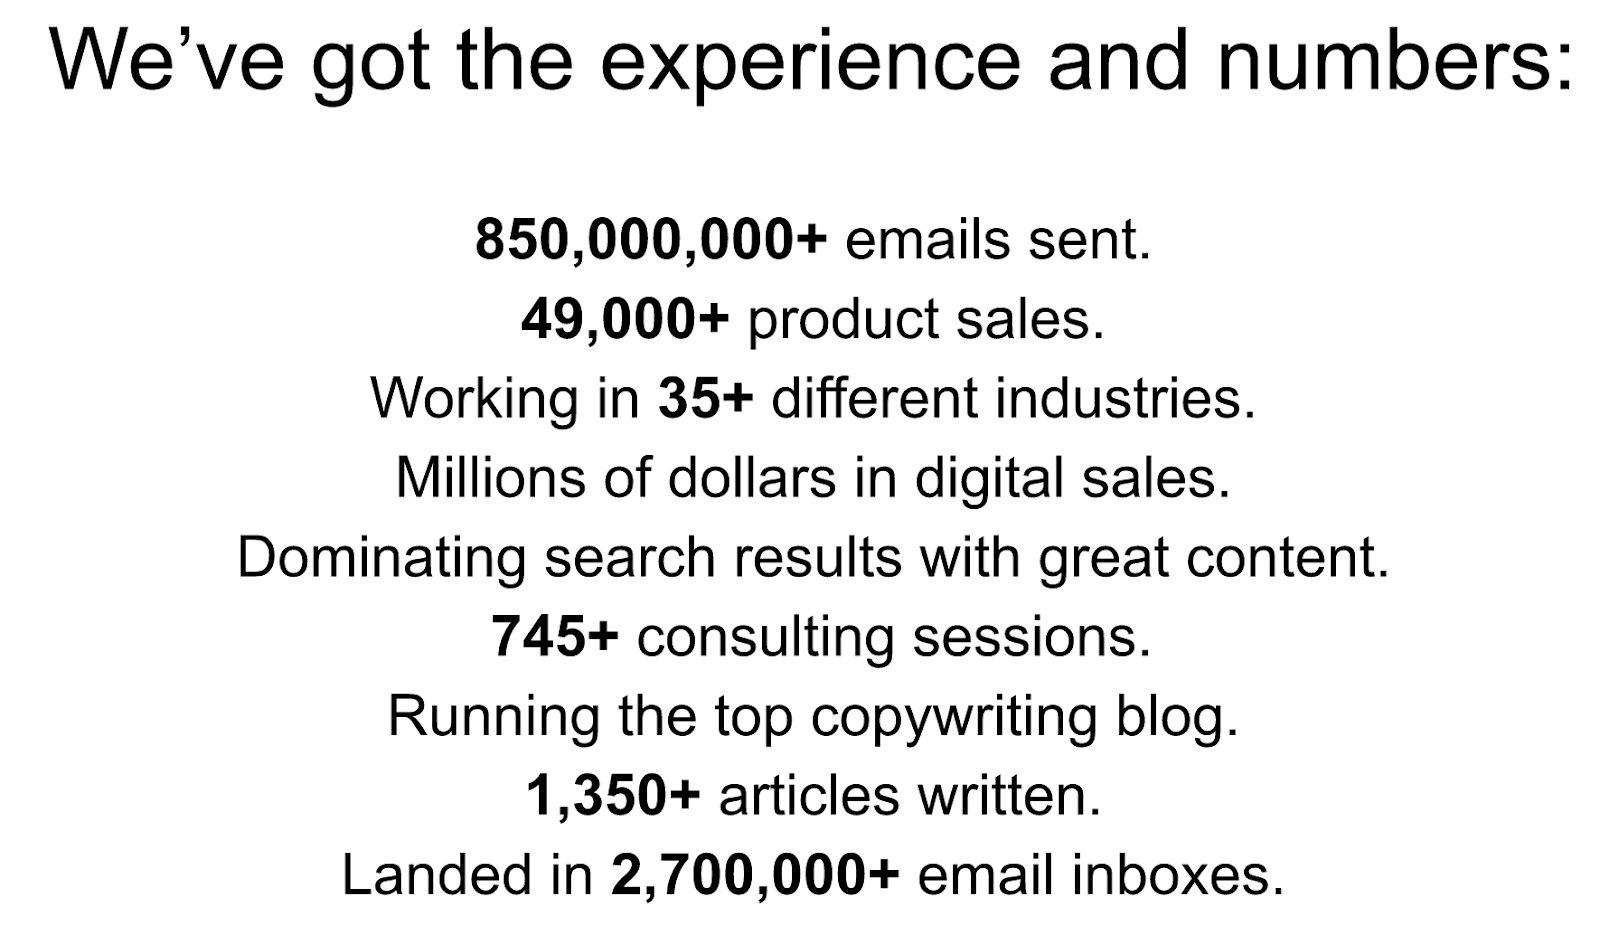 copywriting experience and numbers